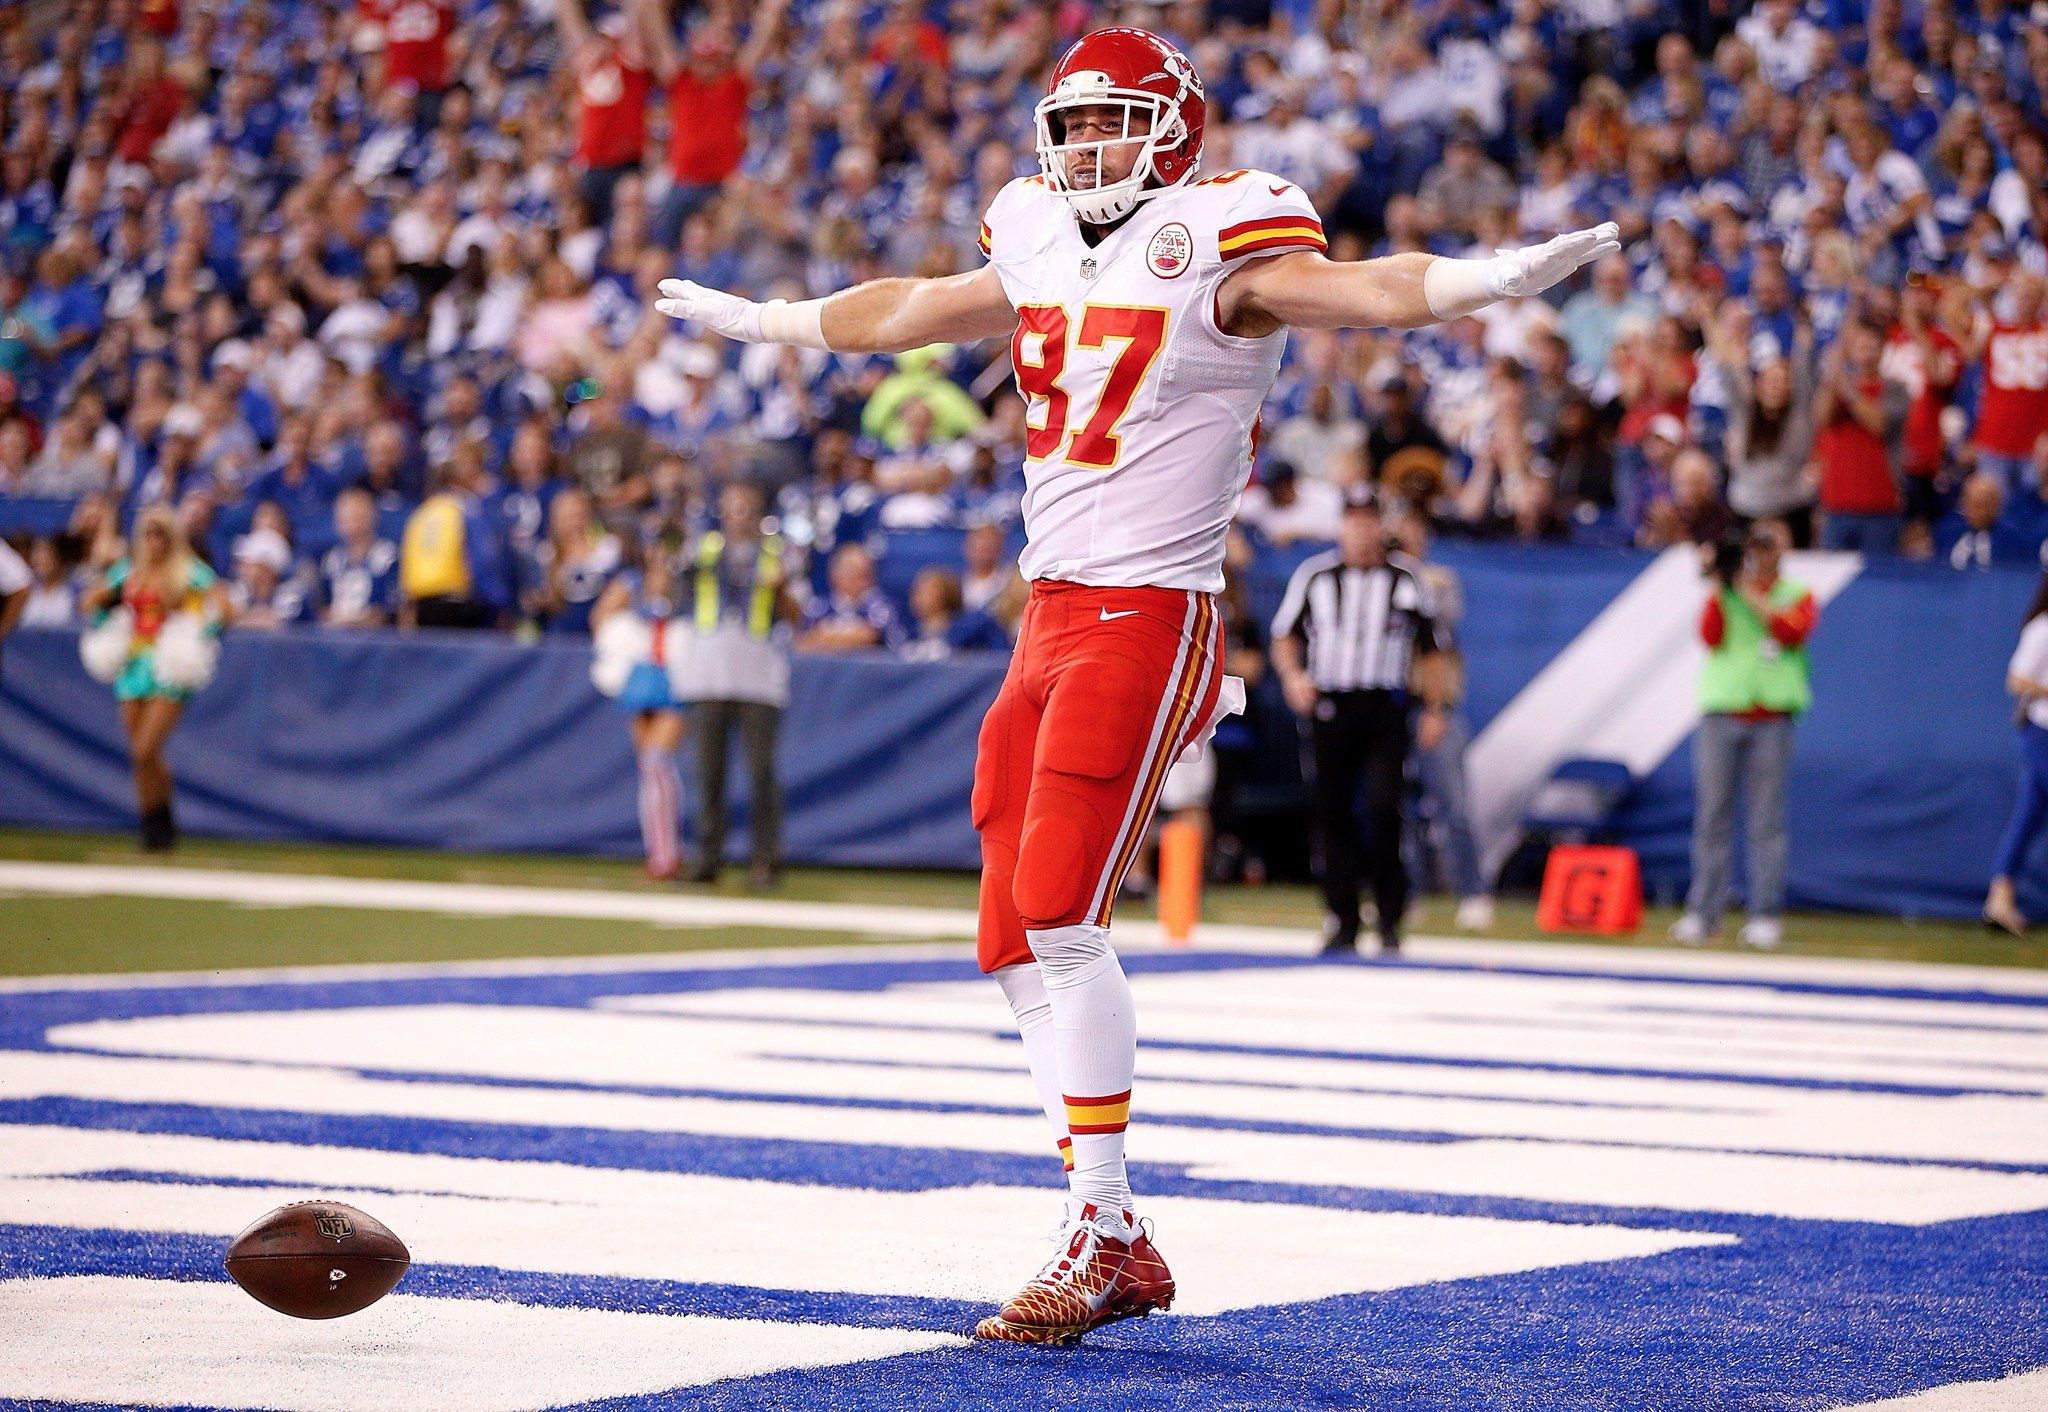 Pin By E V A On Chiefs In 2020 Nfl Football College Football